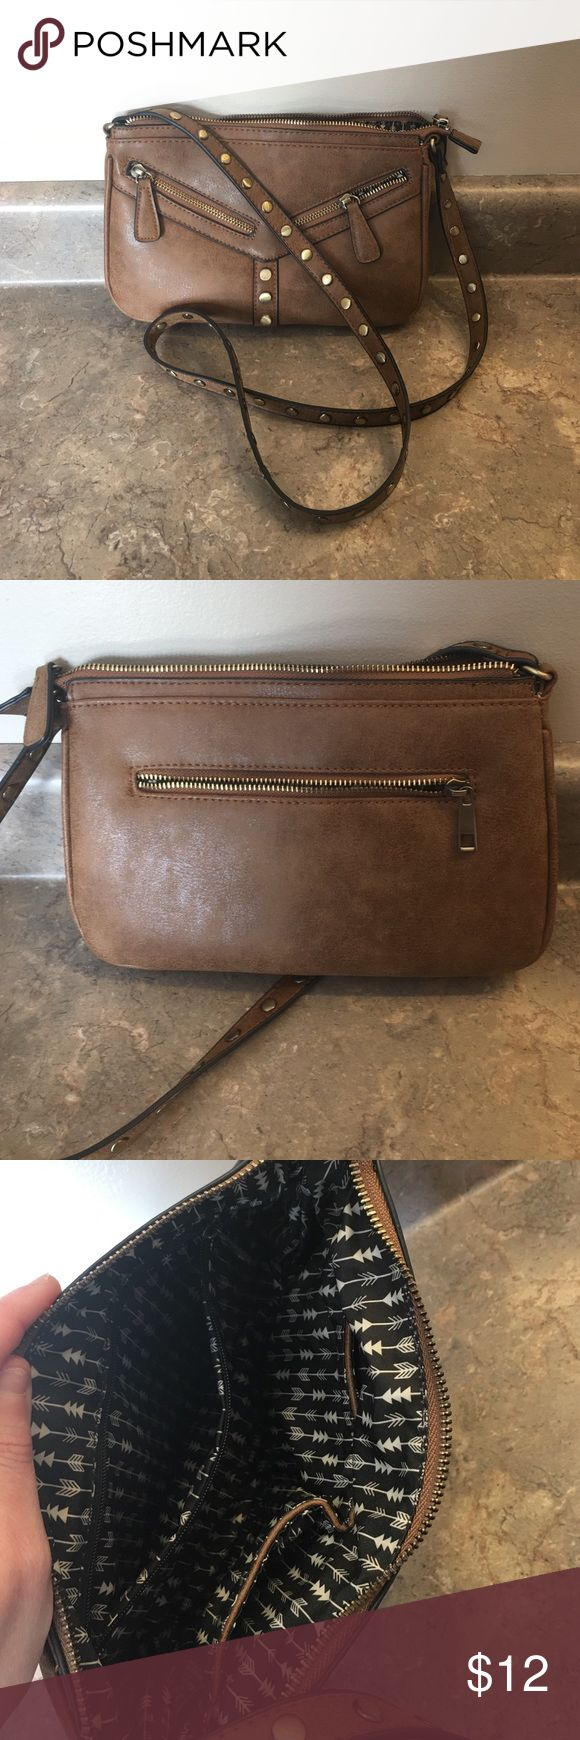 Small Studded brown crossbody bag!  Super cute! Very cute small crossbody bag with bronze stuffed accents!  Used once and in excellent condition! Francesca's Collections Bags Crossbody Bags